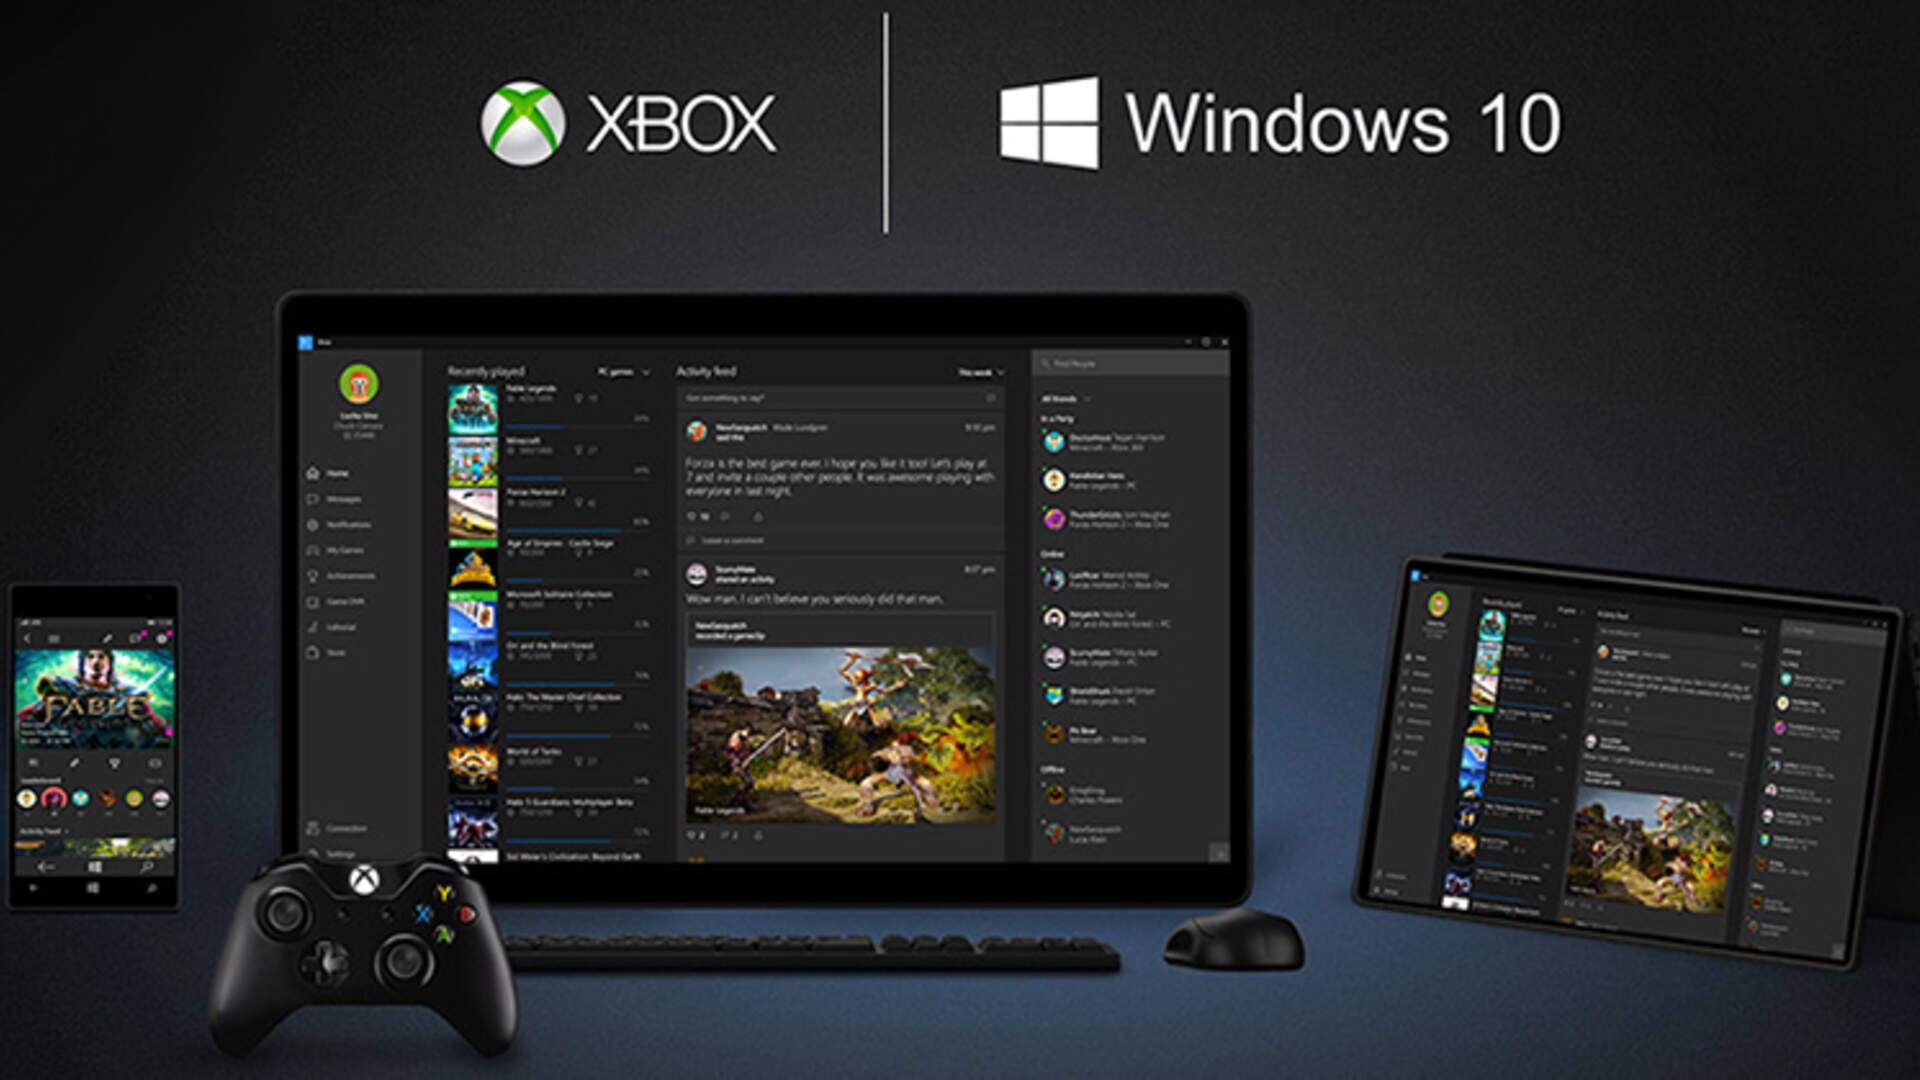 Xbox and Windows 10 Come Together, Could Bring Smartphone-Style Upgrades to Consoles